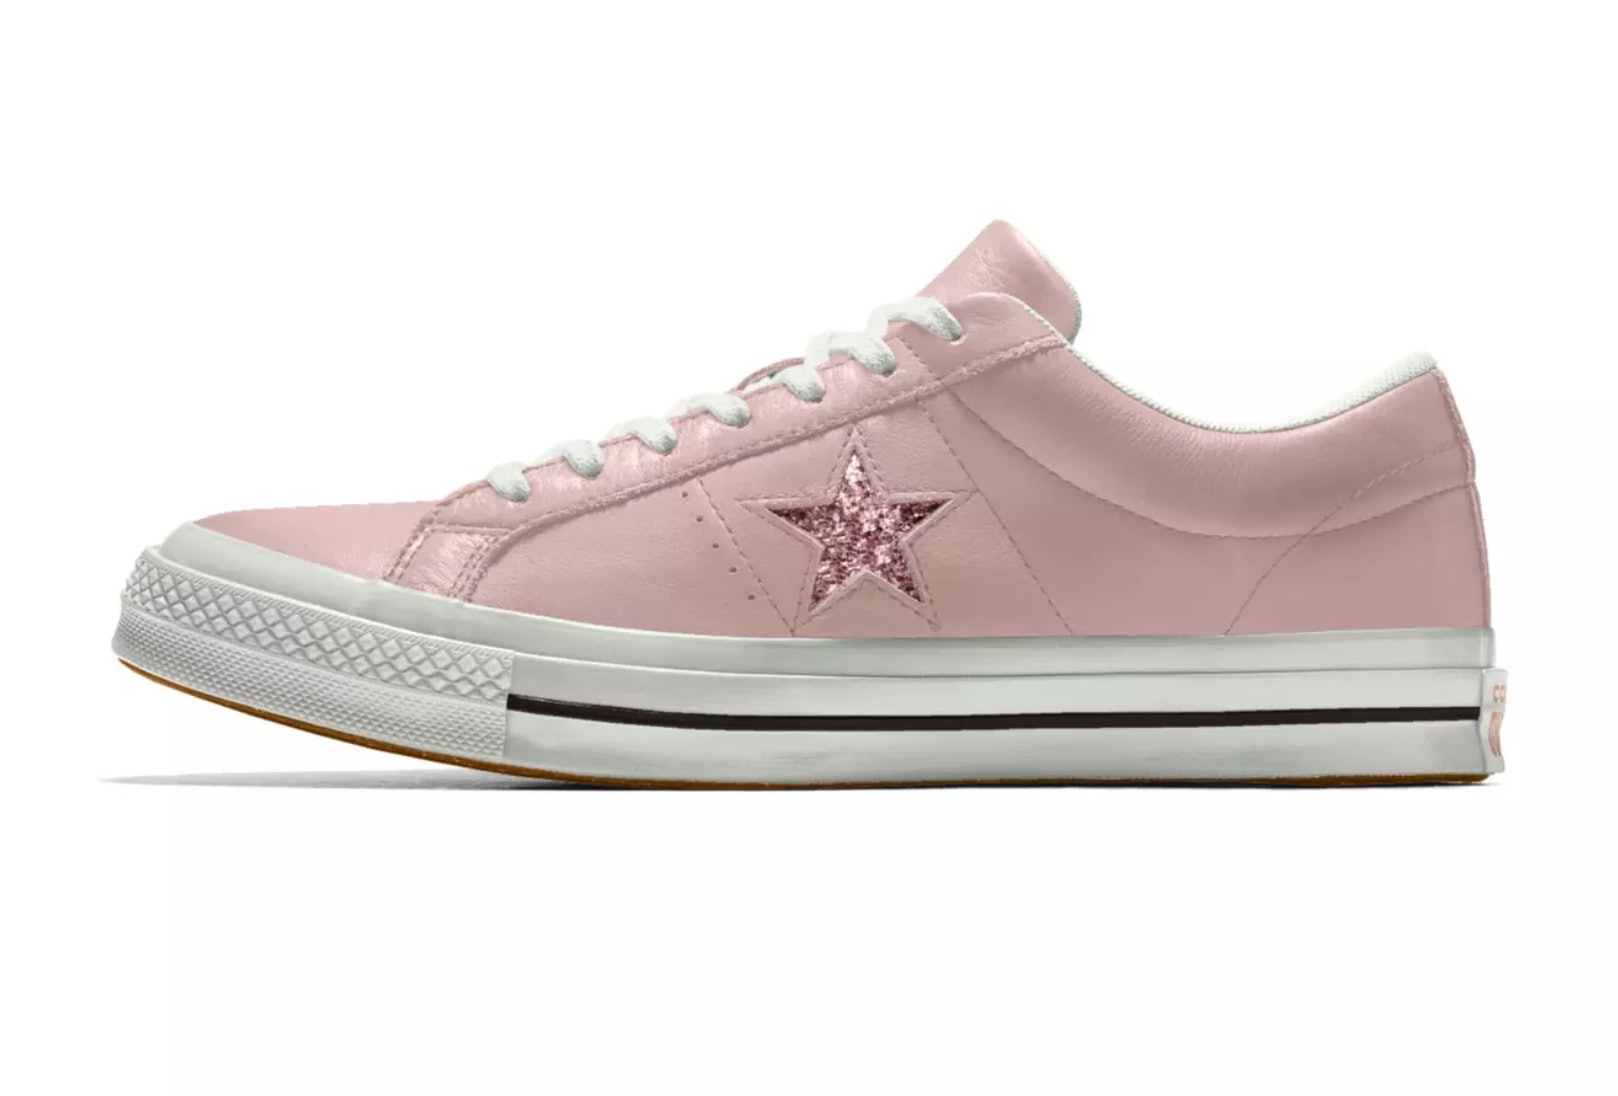 328d7b3f120890 Converse s One Star Glitter Sneakers Are Like Galaxies For Your Feet